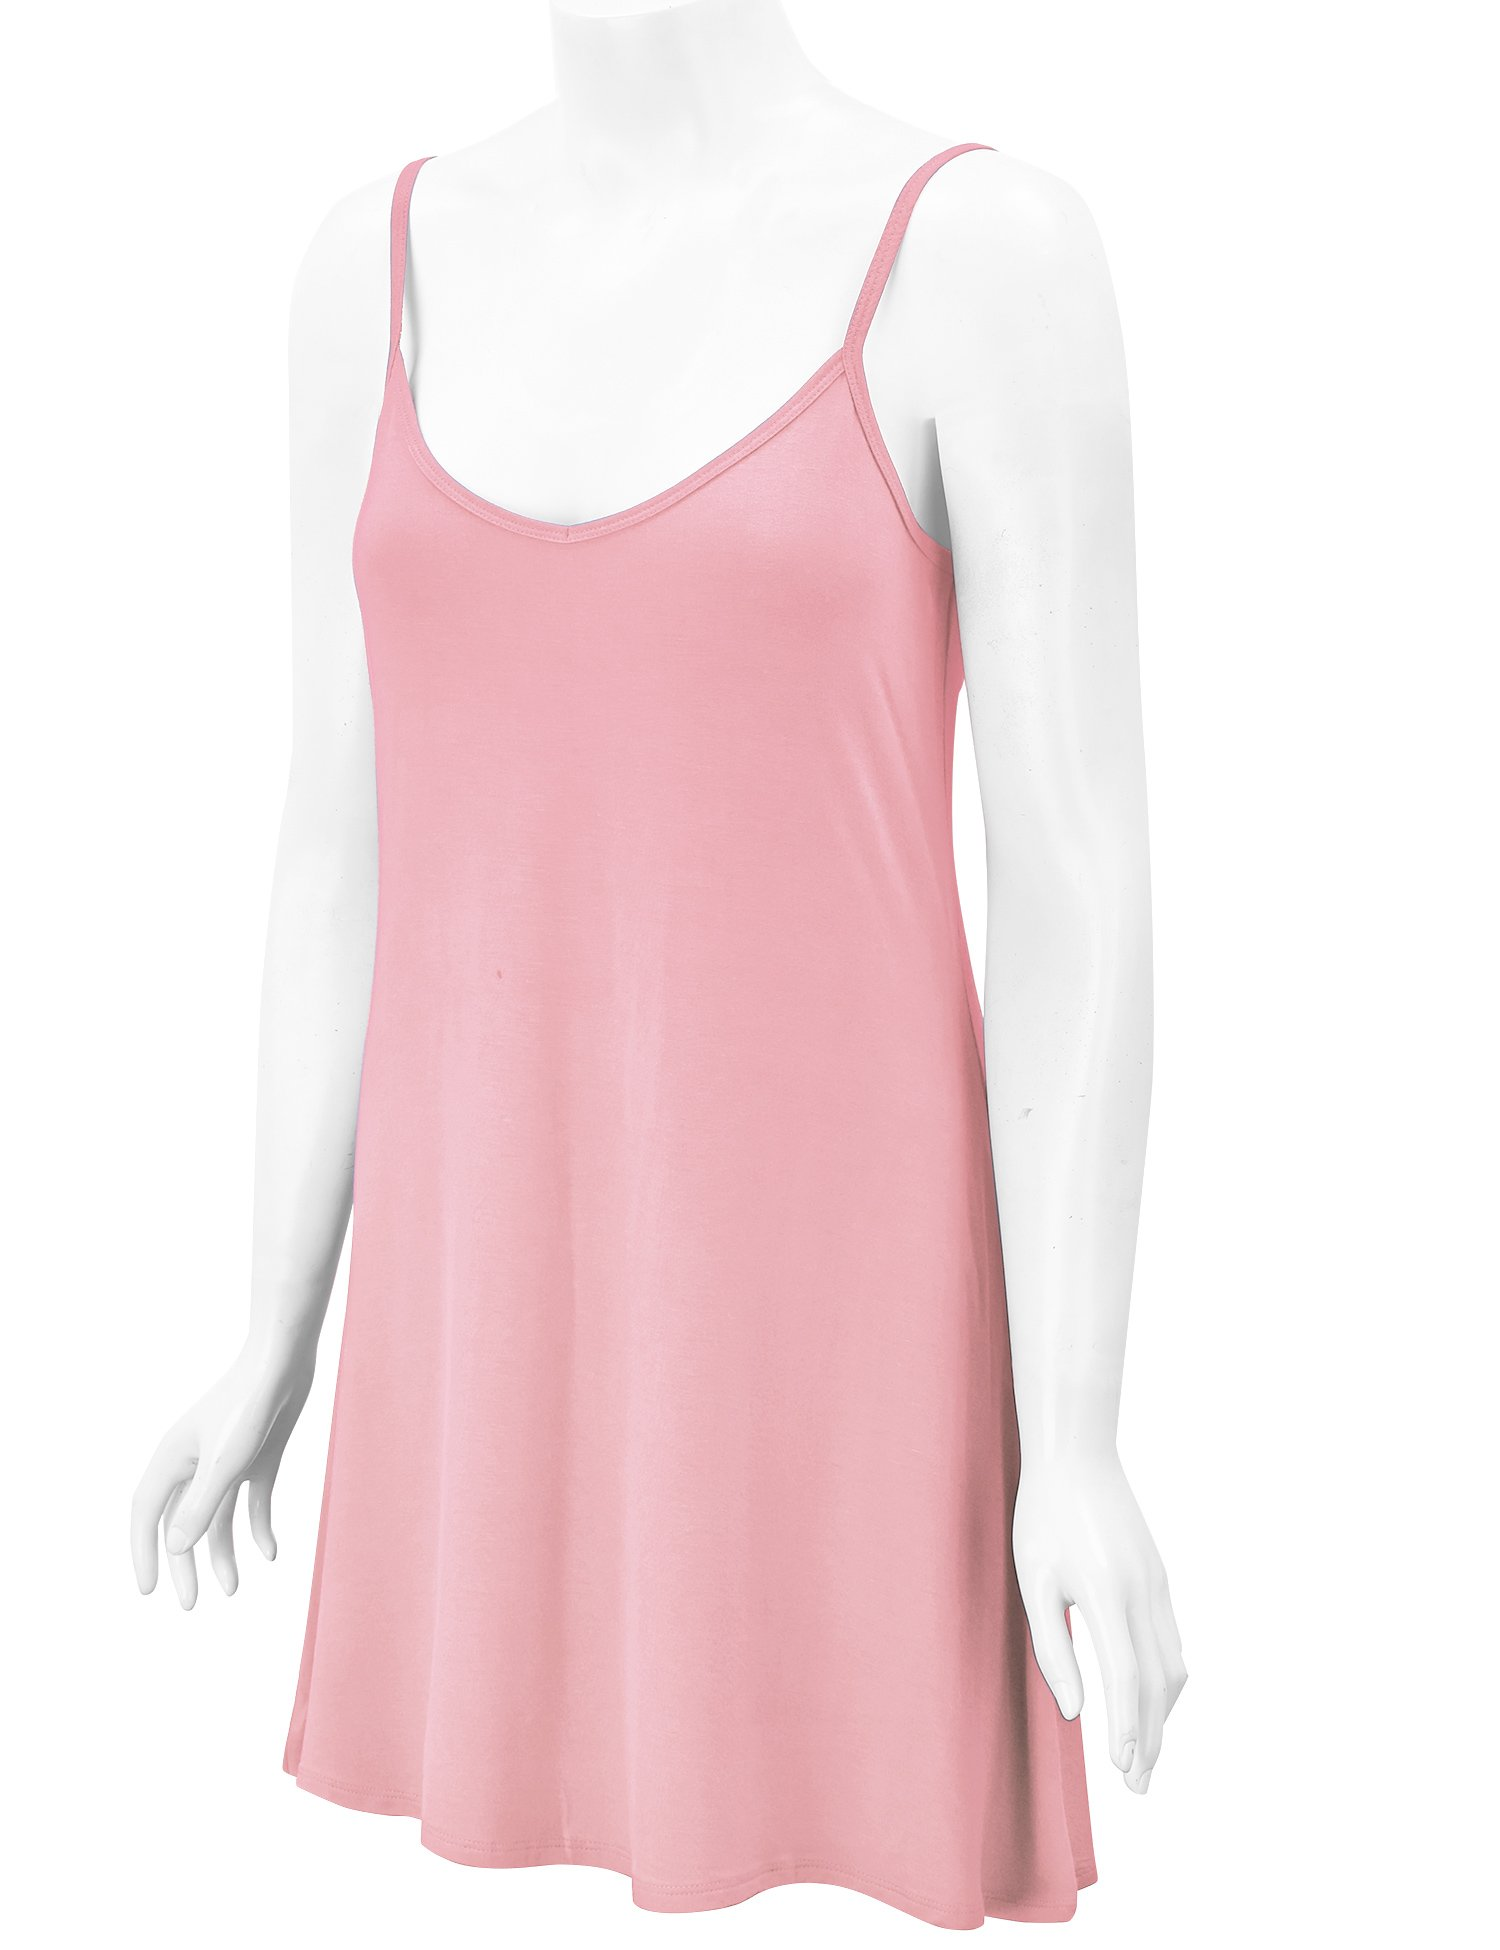 WDR1090 Womens V Neck Spaghetti Strap Tunic Short Dress S Pink by Lock and Love (Image #5)